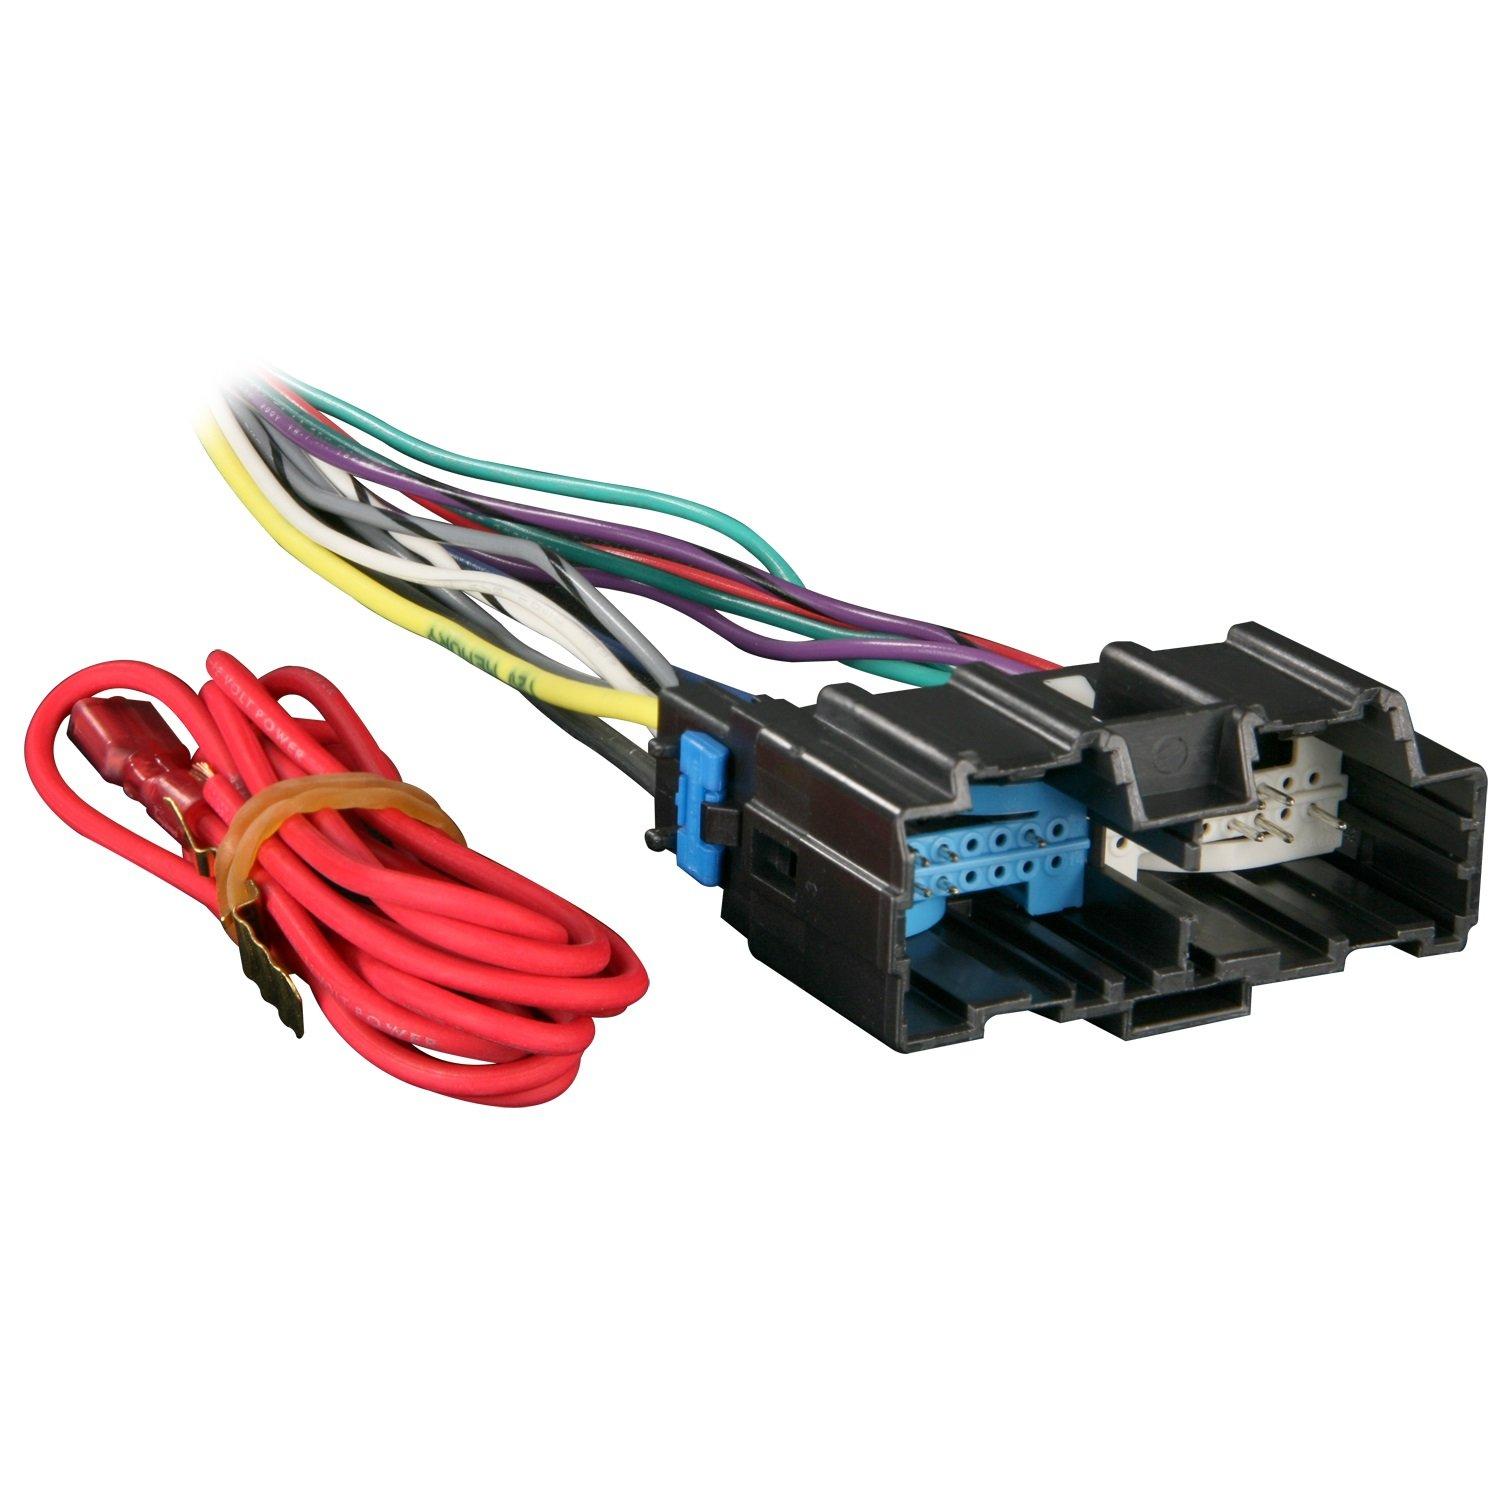 71ZzH dyg7L._SL1500_ amazon com metra 70 2105 radio wiring harness for impala monte 2006 chevy impala radio harness wiring at webbmarketing.co